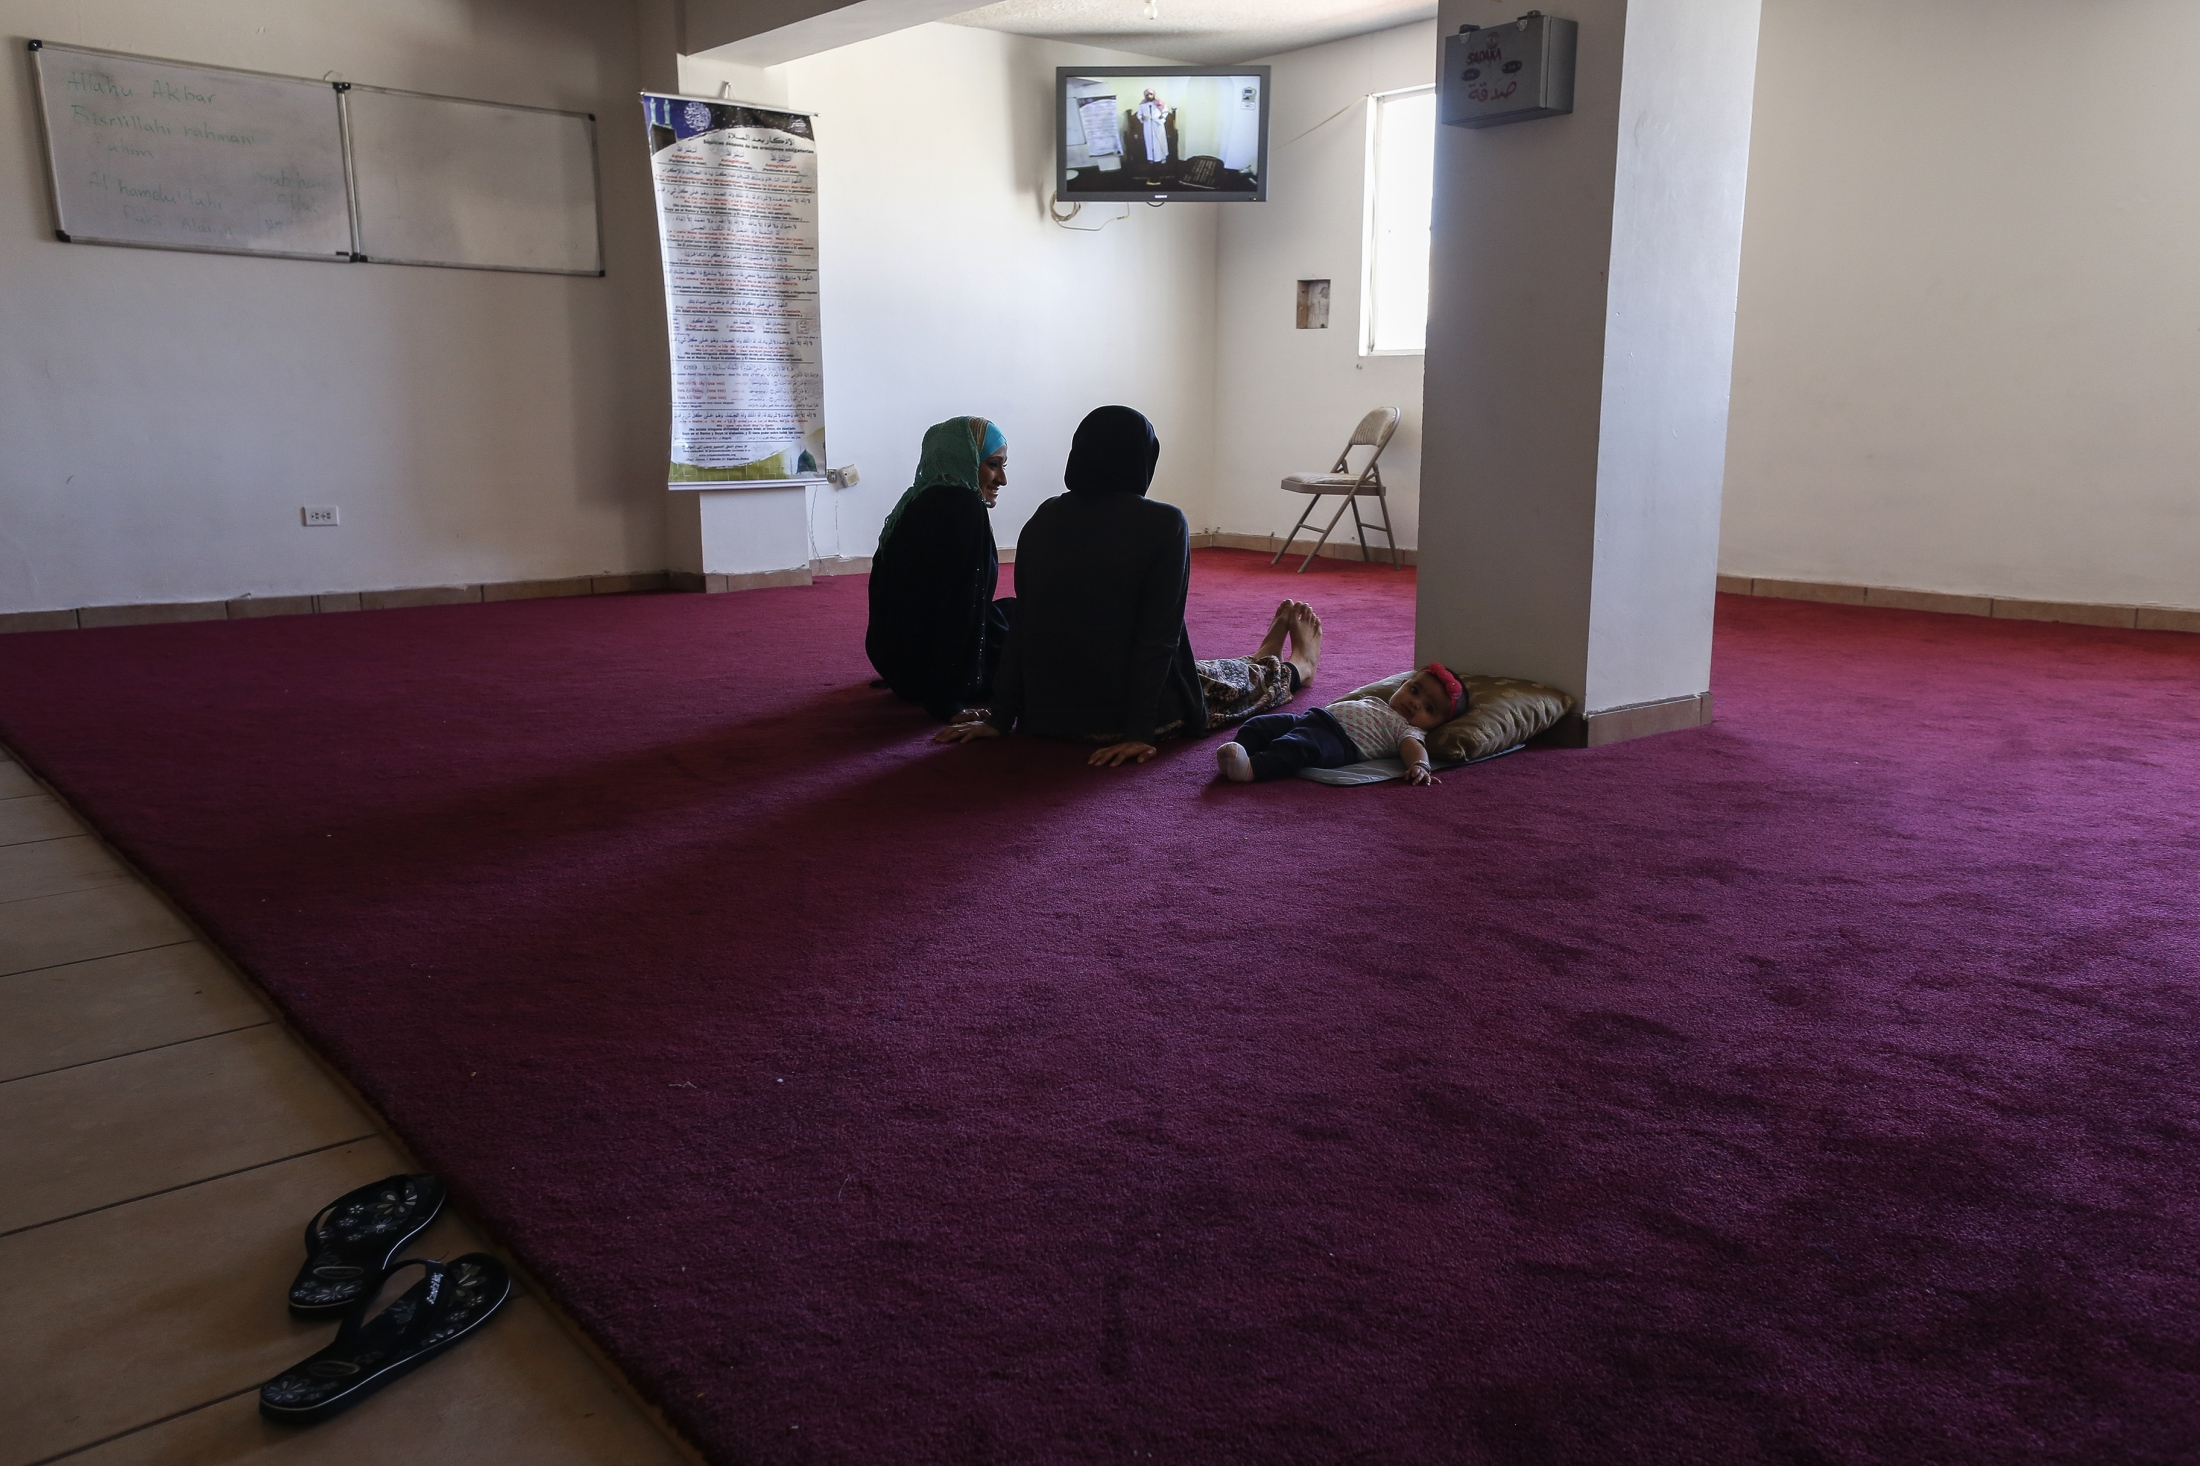 Vanessa, left, Iman, and her baby watch in a separate room and through a television as an Imam from their mosque gives a lecture during a prayer session in Playas de Tijuana, along the Mexico-U.S. border. A growing number of Muslims in the Tijuana area has prompted the building of more mosques.